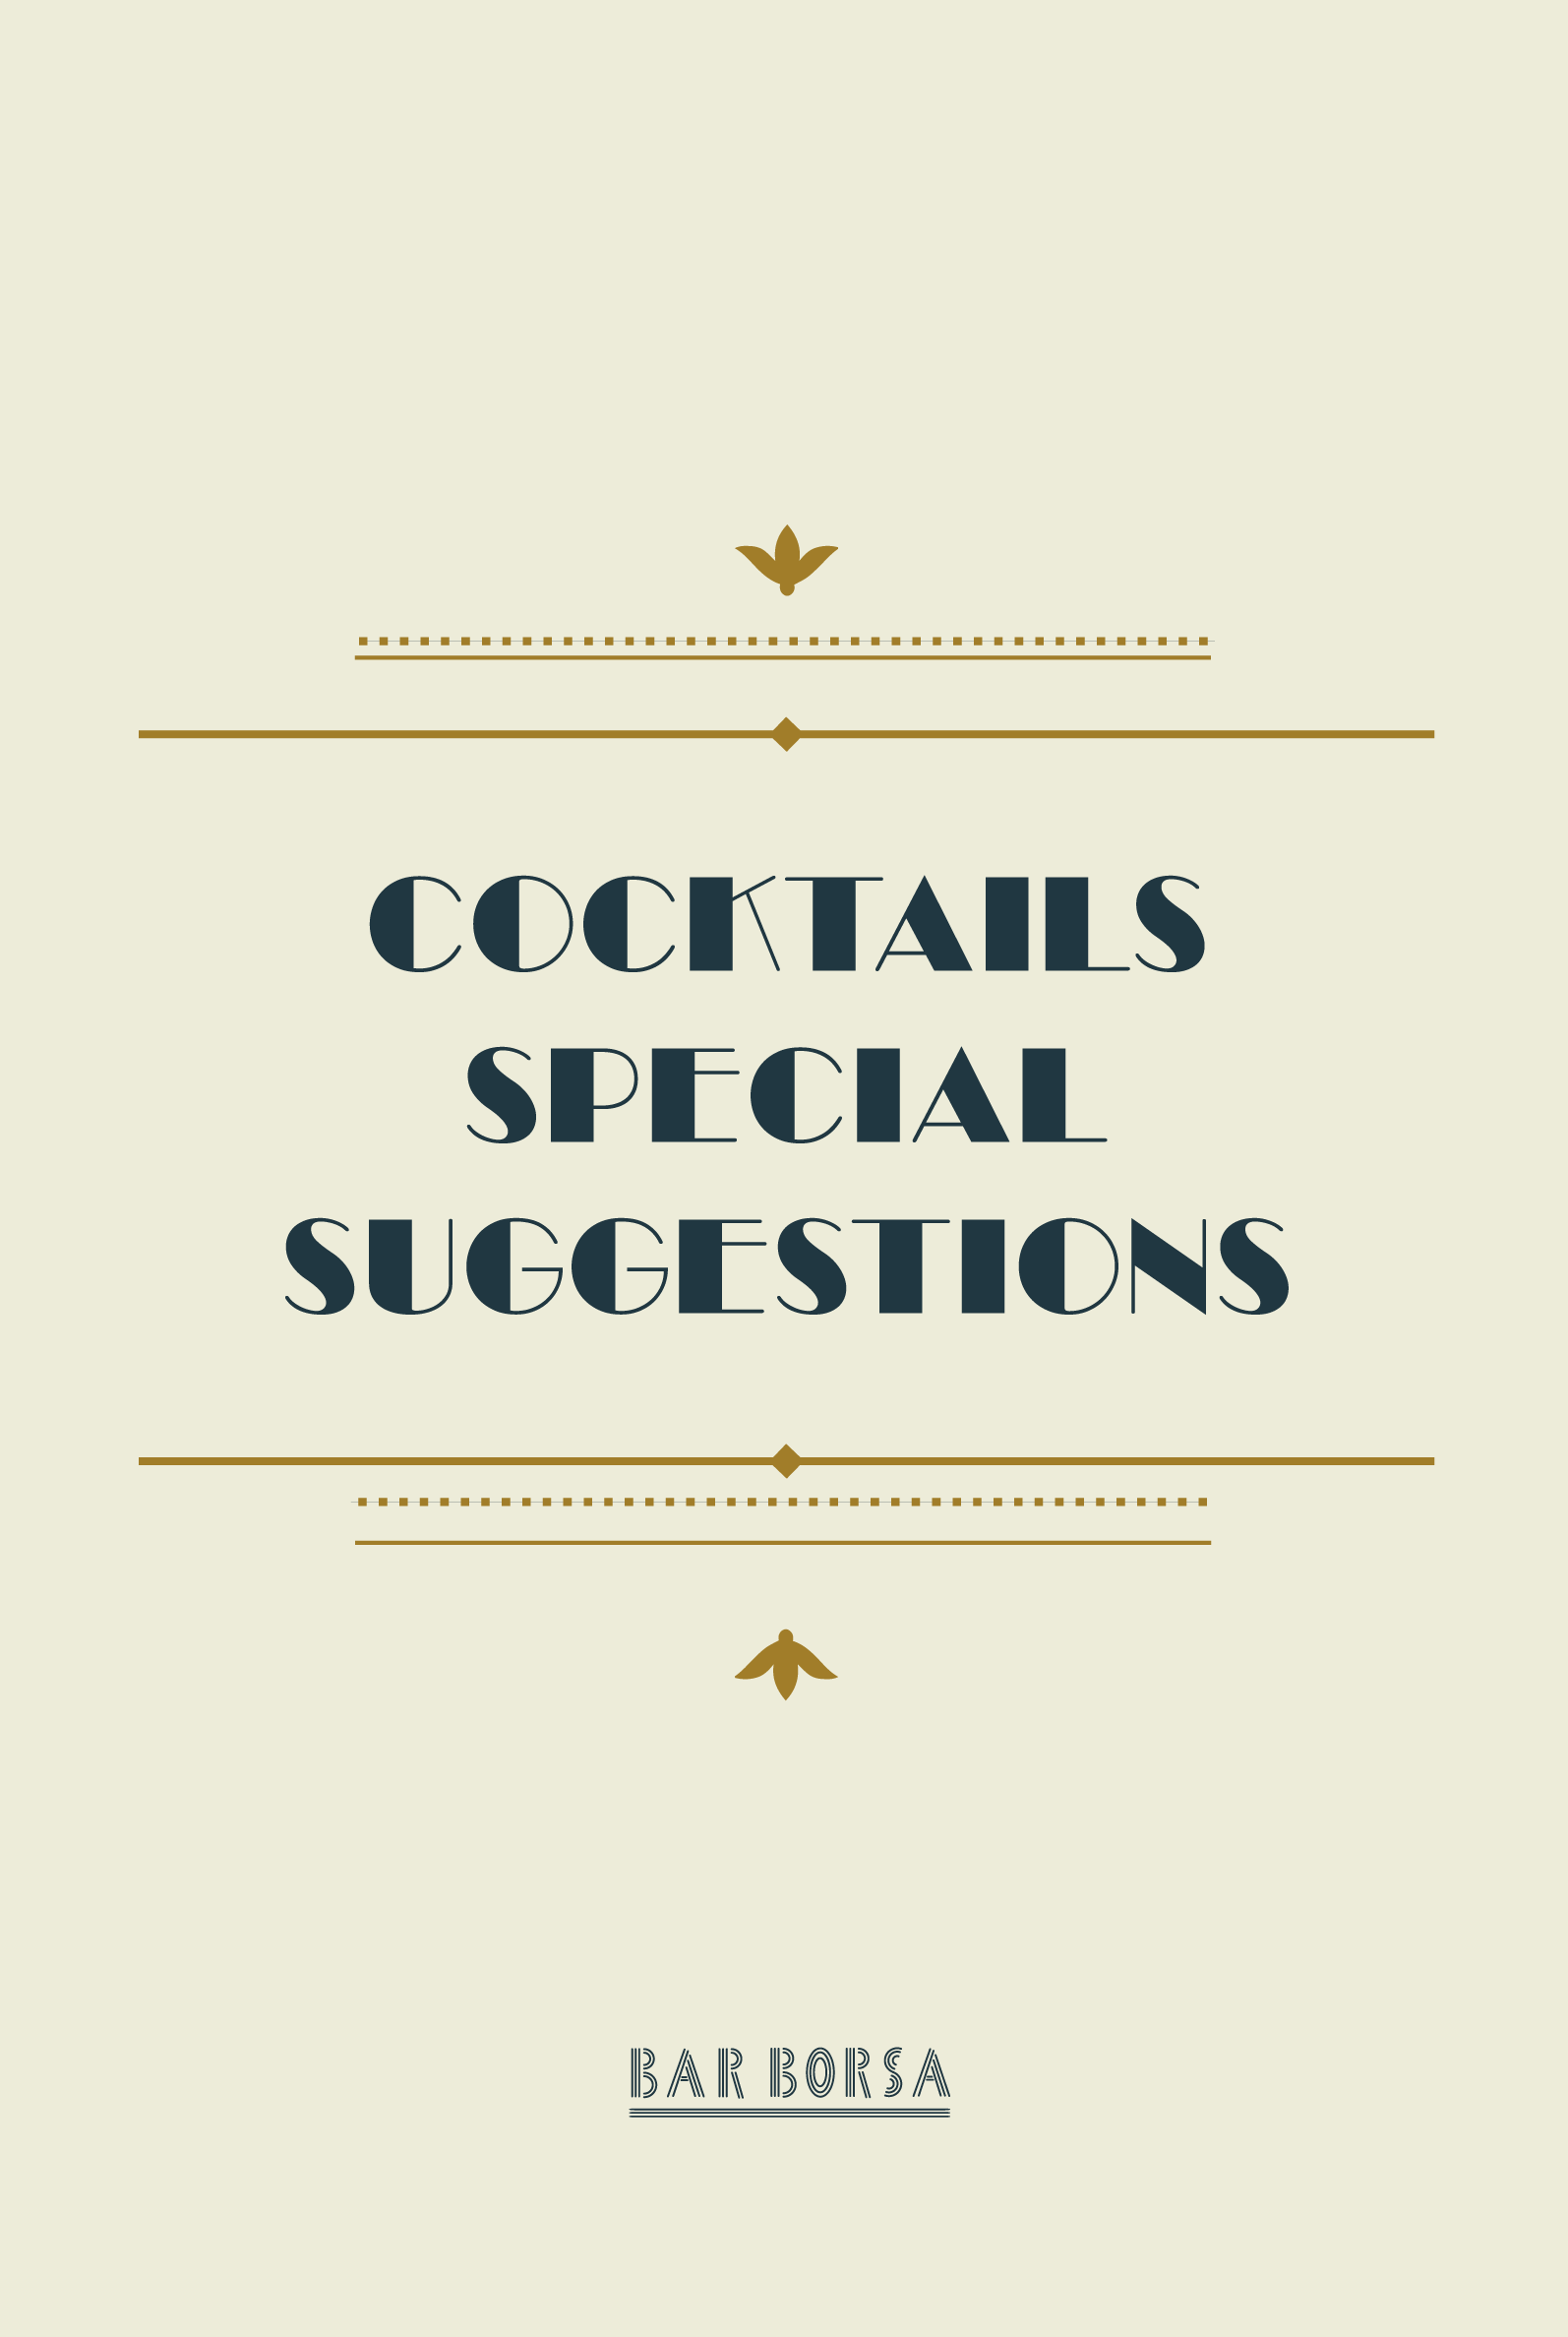 COCKTAILS SPECIAL SUGGESTIONS